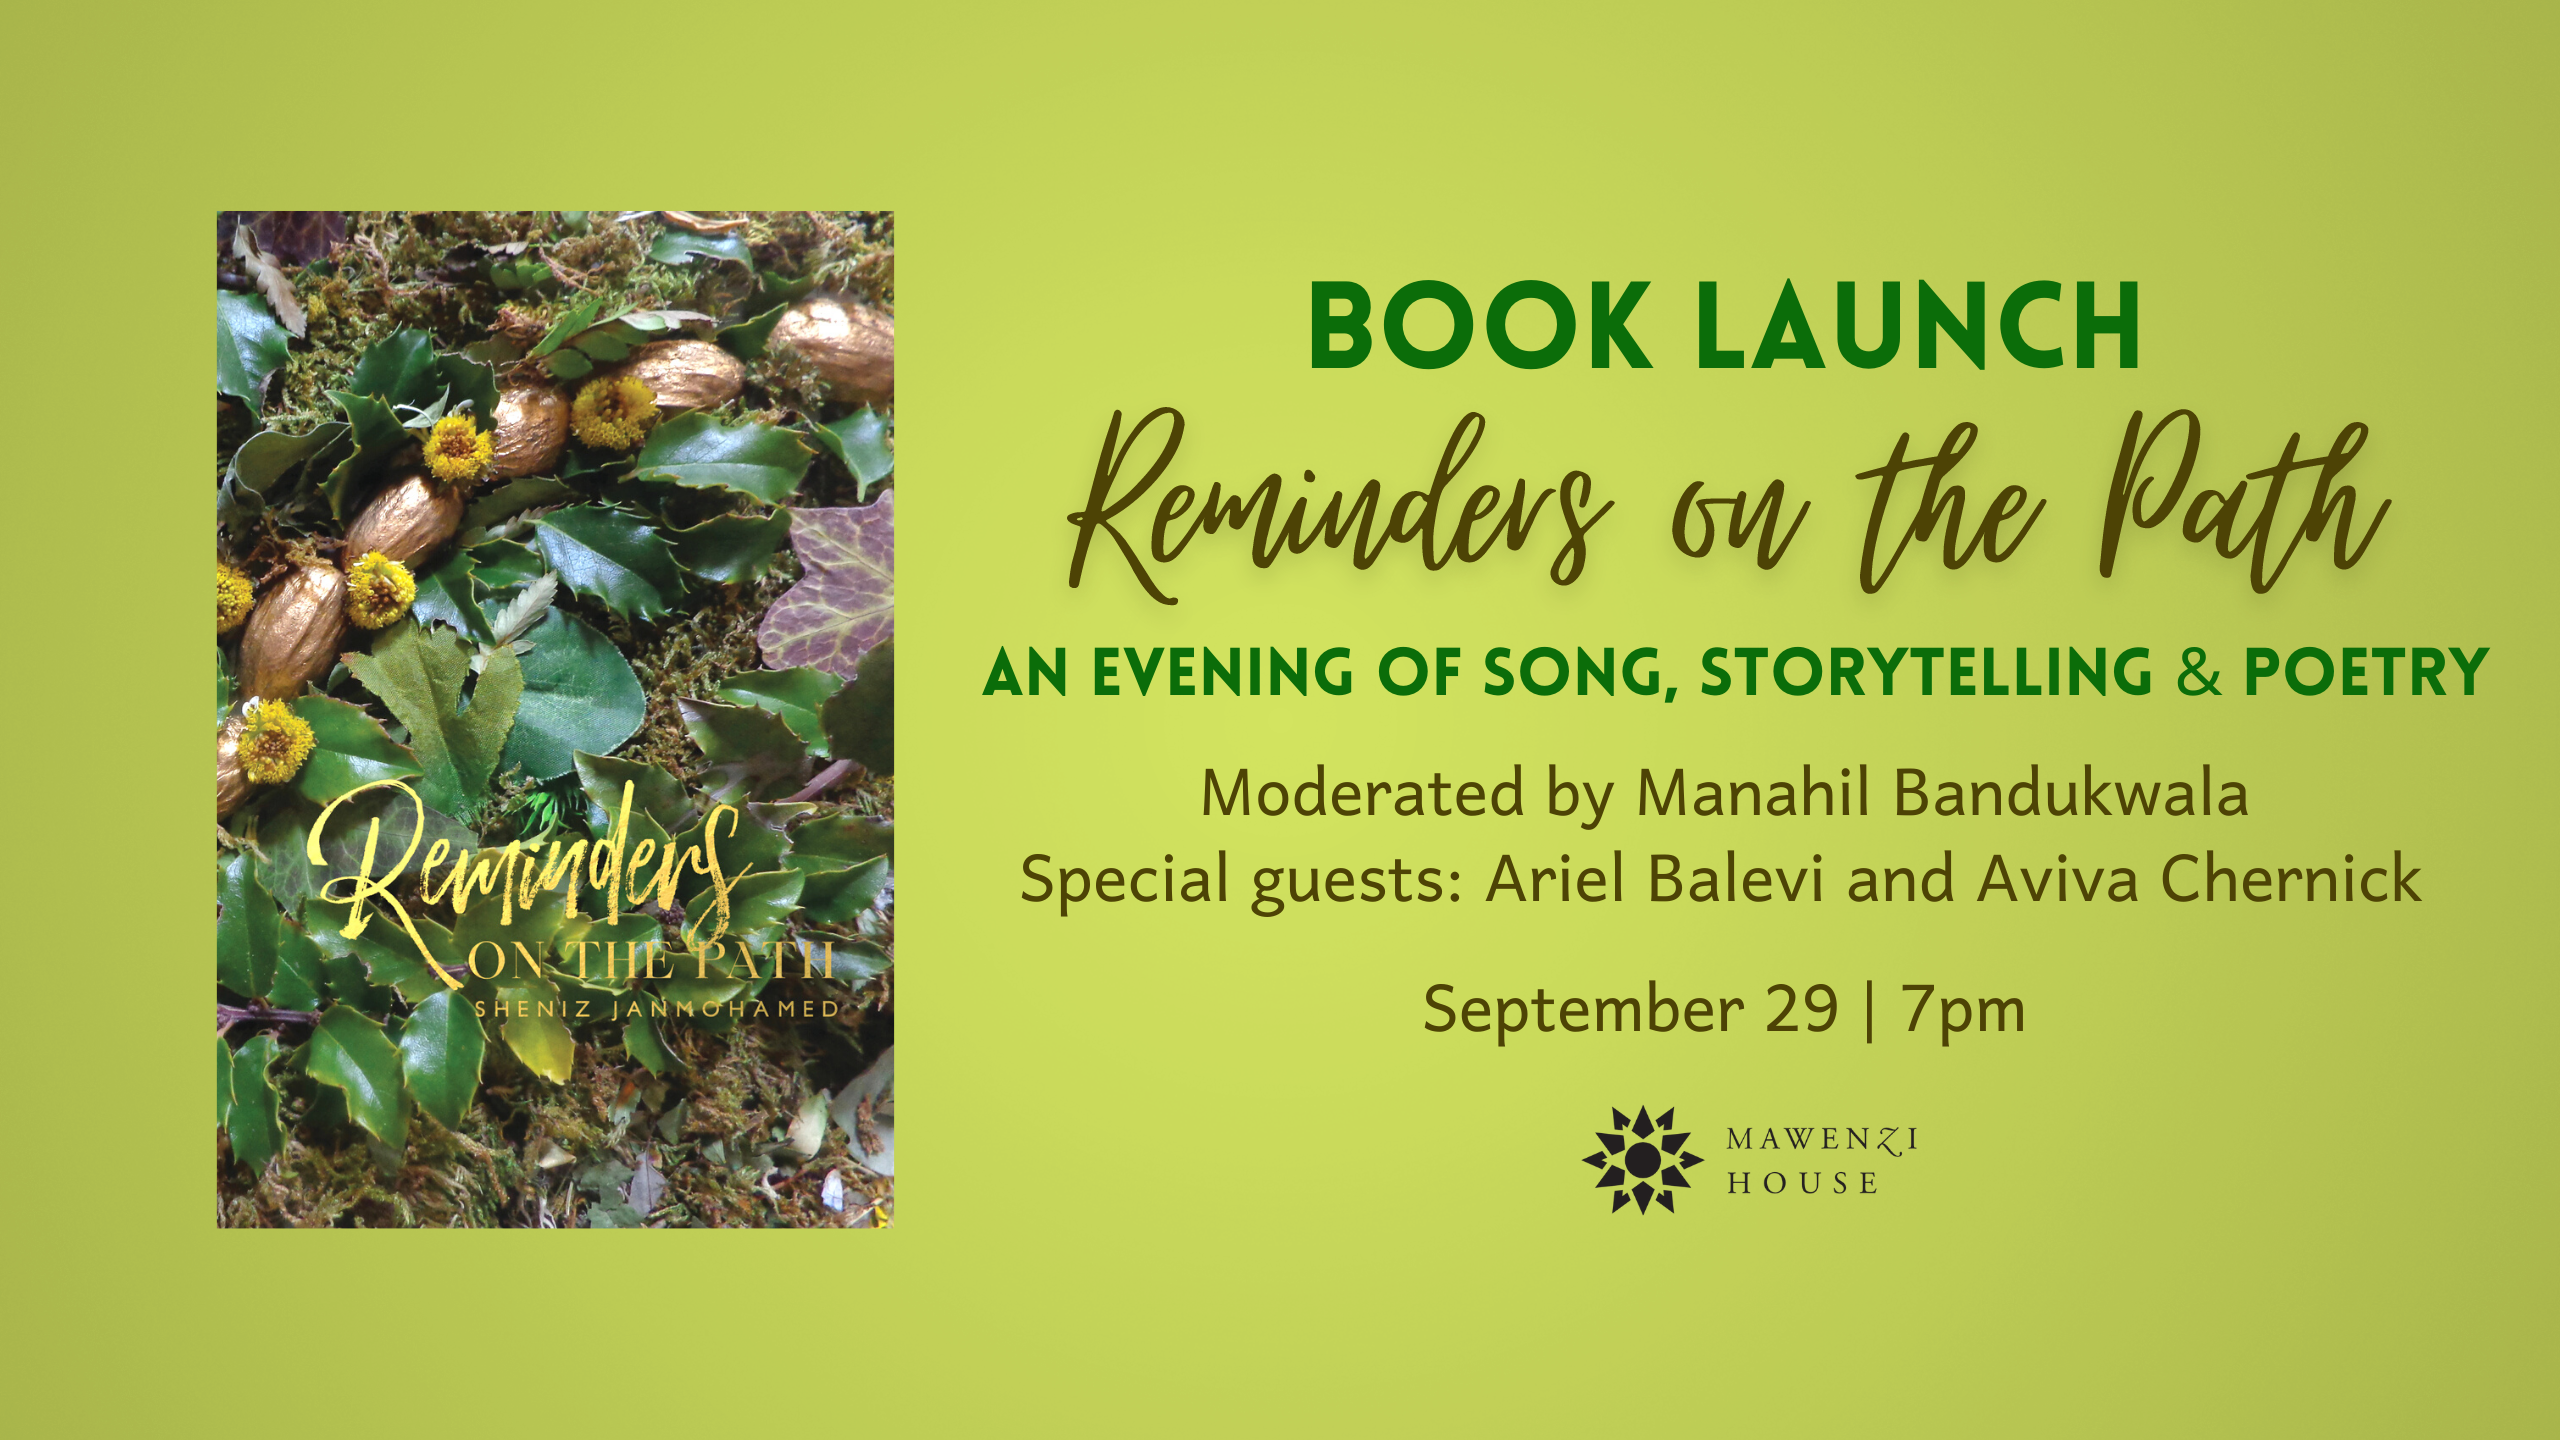 Reminder on the Path Book Launch Sept 29, 7pm